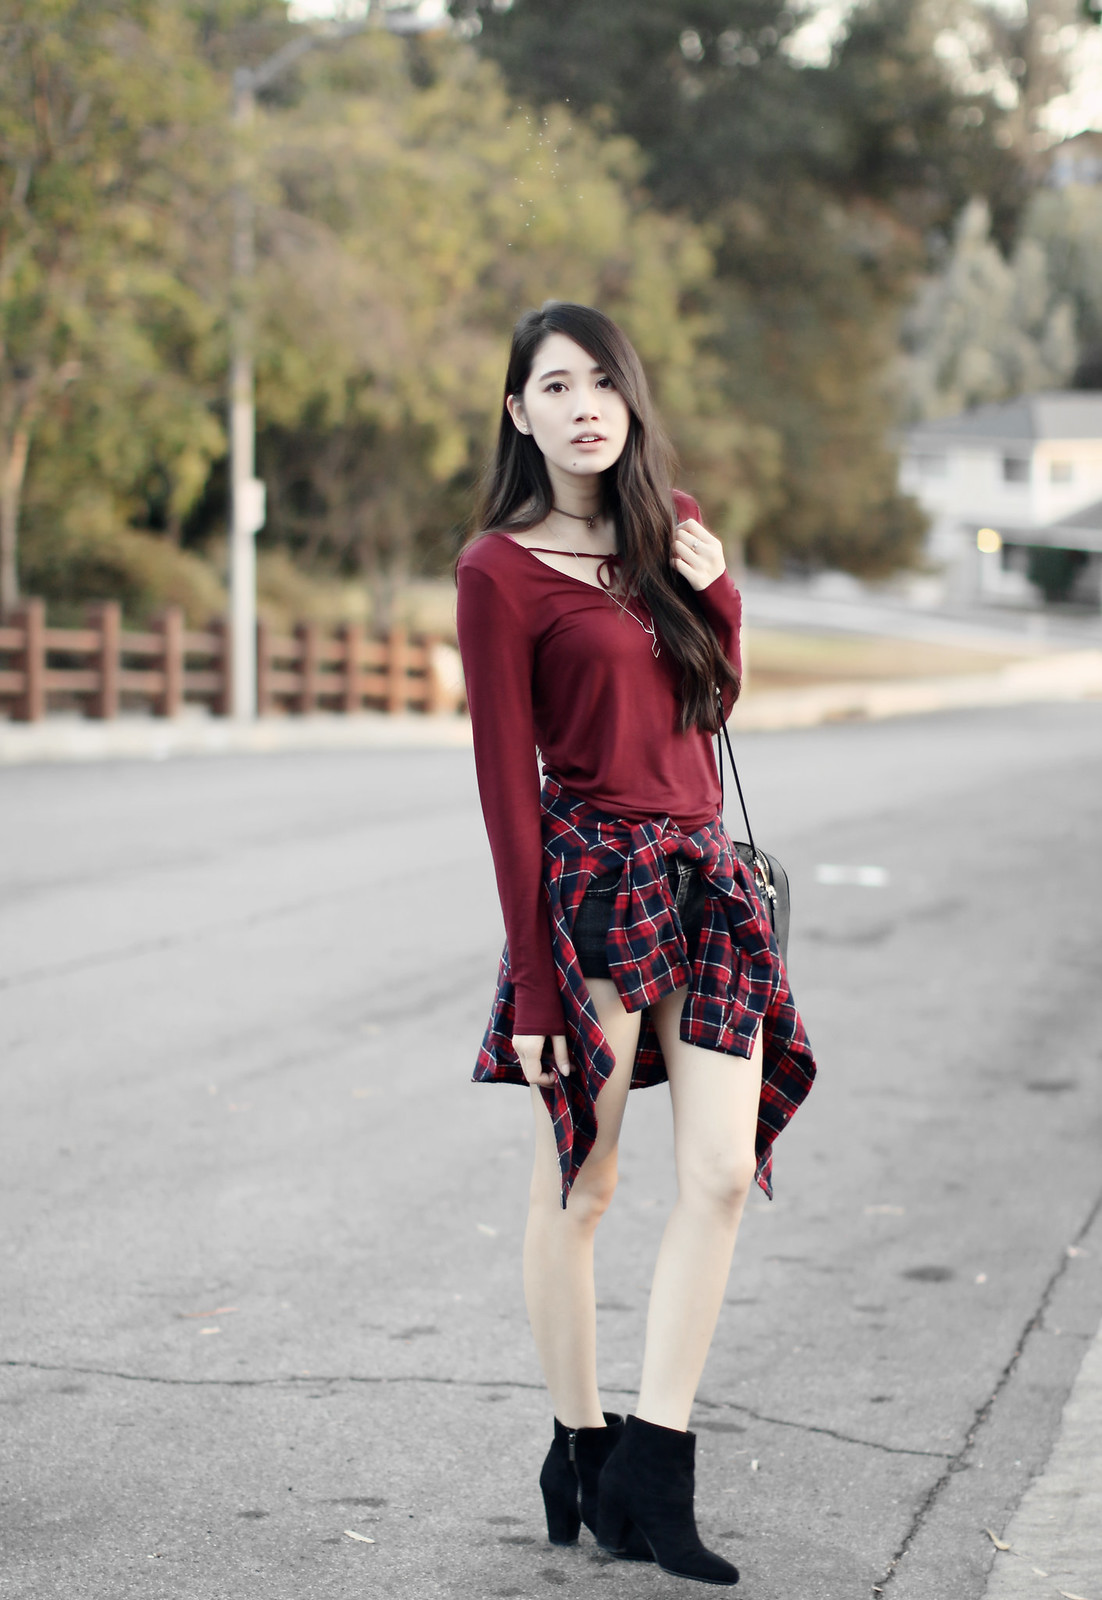 1127-fall-ootd-fashion-style-hollister-red-bowtie-autumn2016